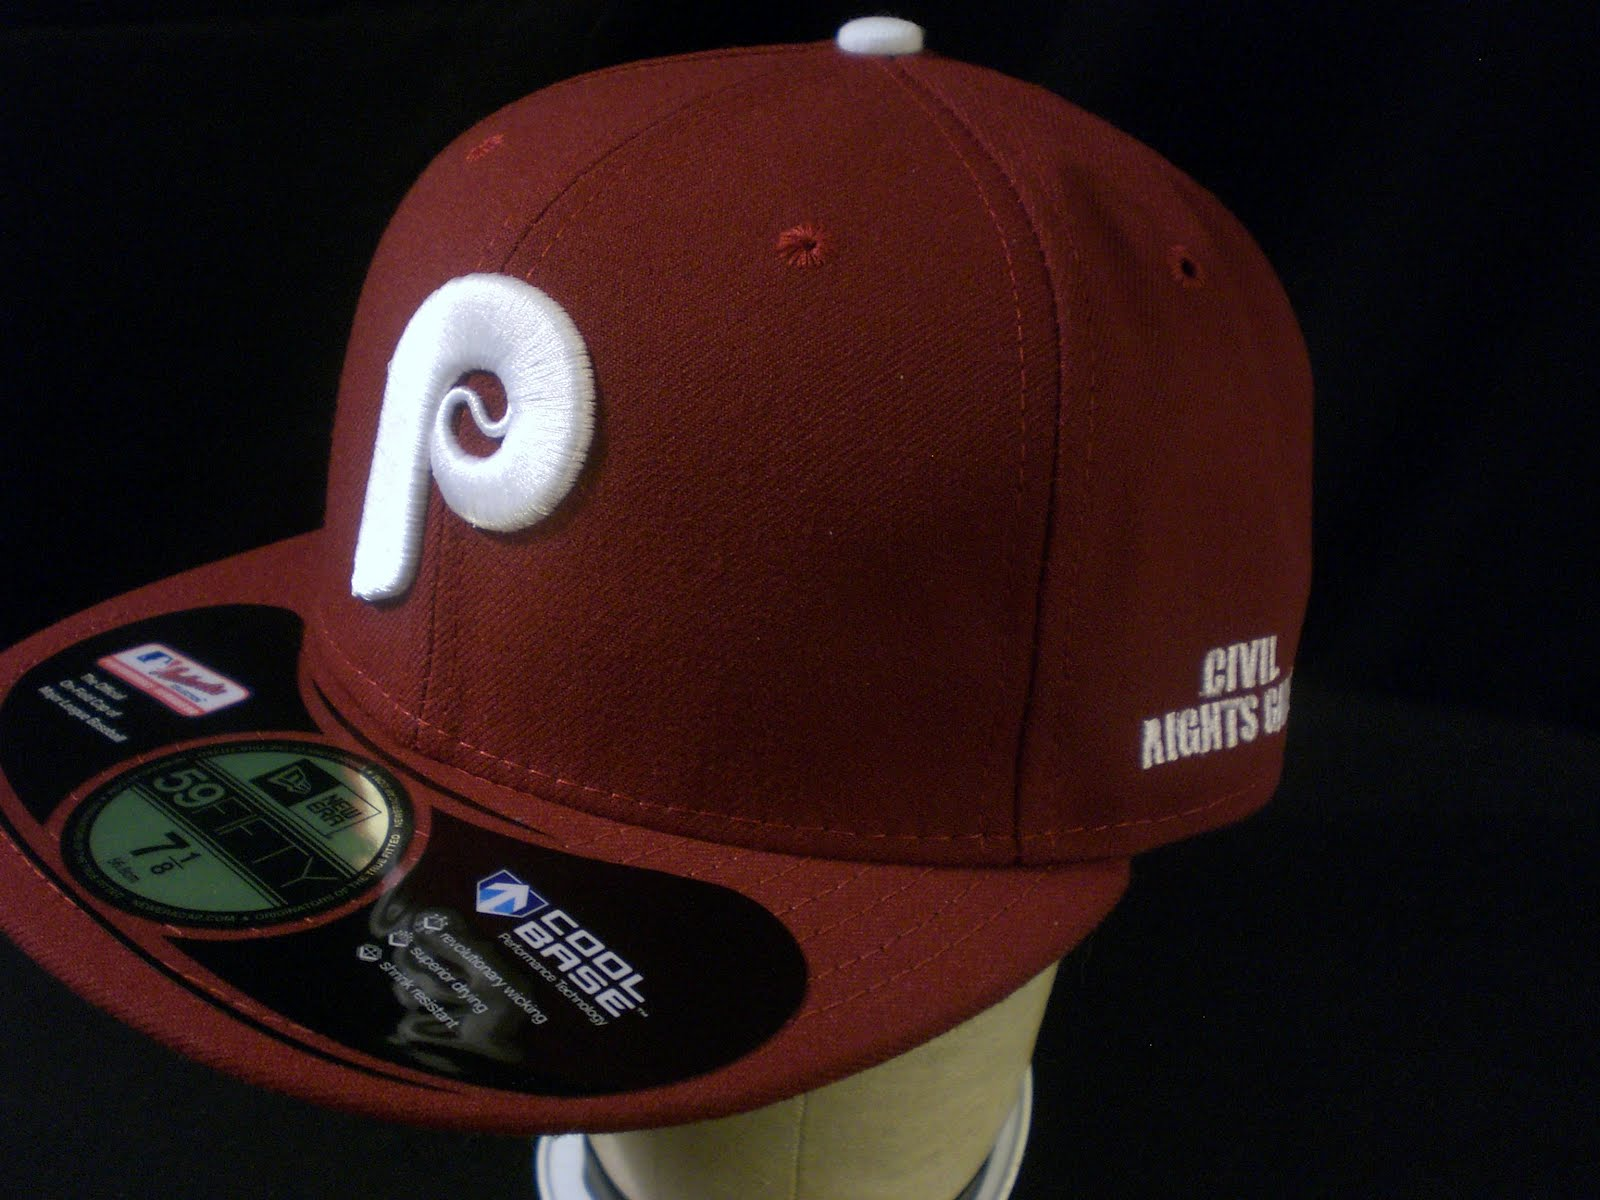 The New Era cap features a grotesquely large P in raised embroidery. fd9173280f3